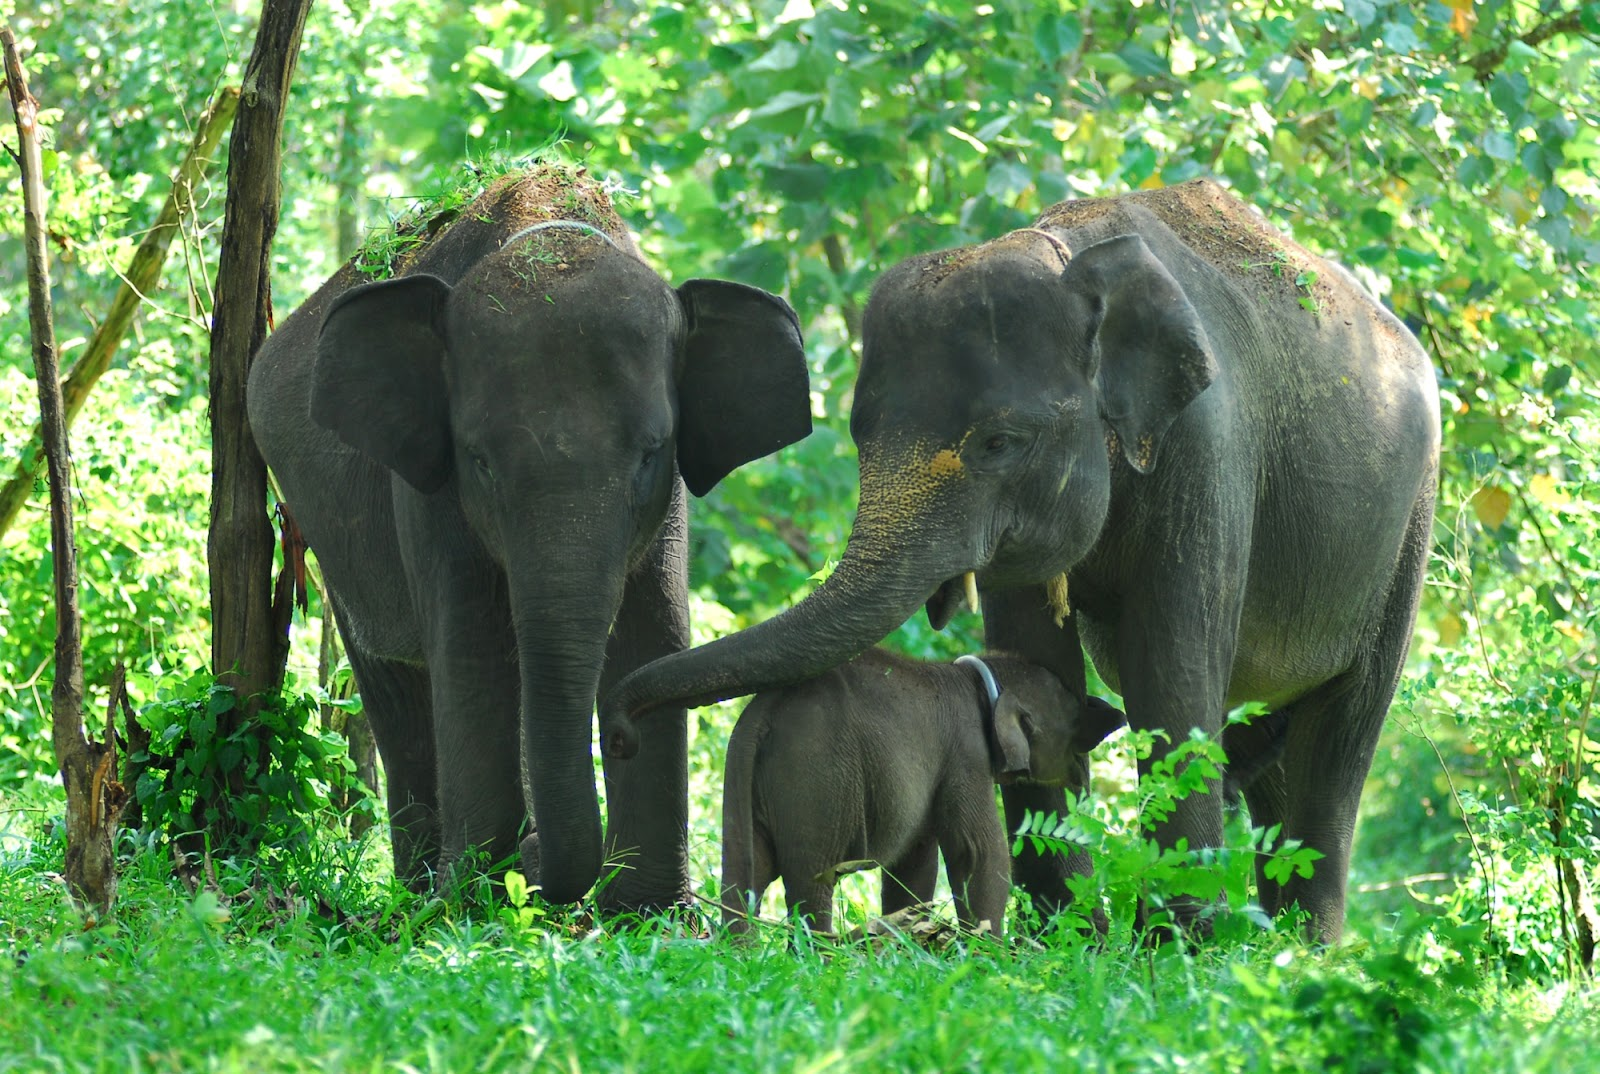 Sumatera Elephants